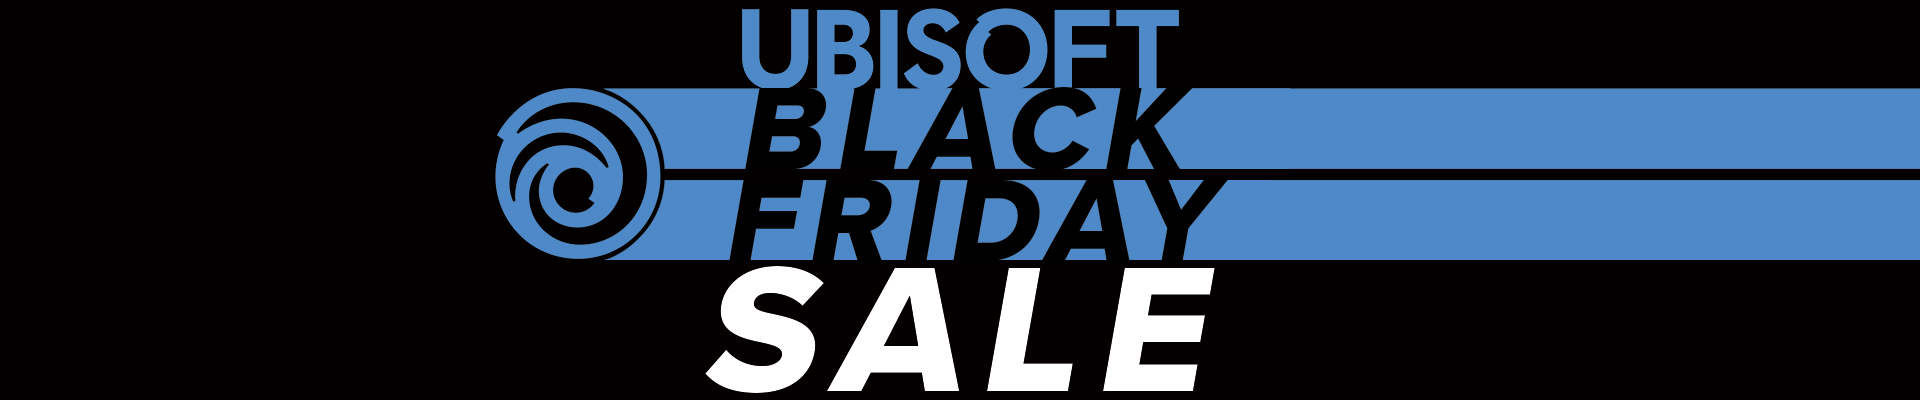 Ubisoft Black Friday Banner